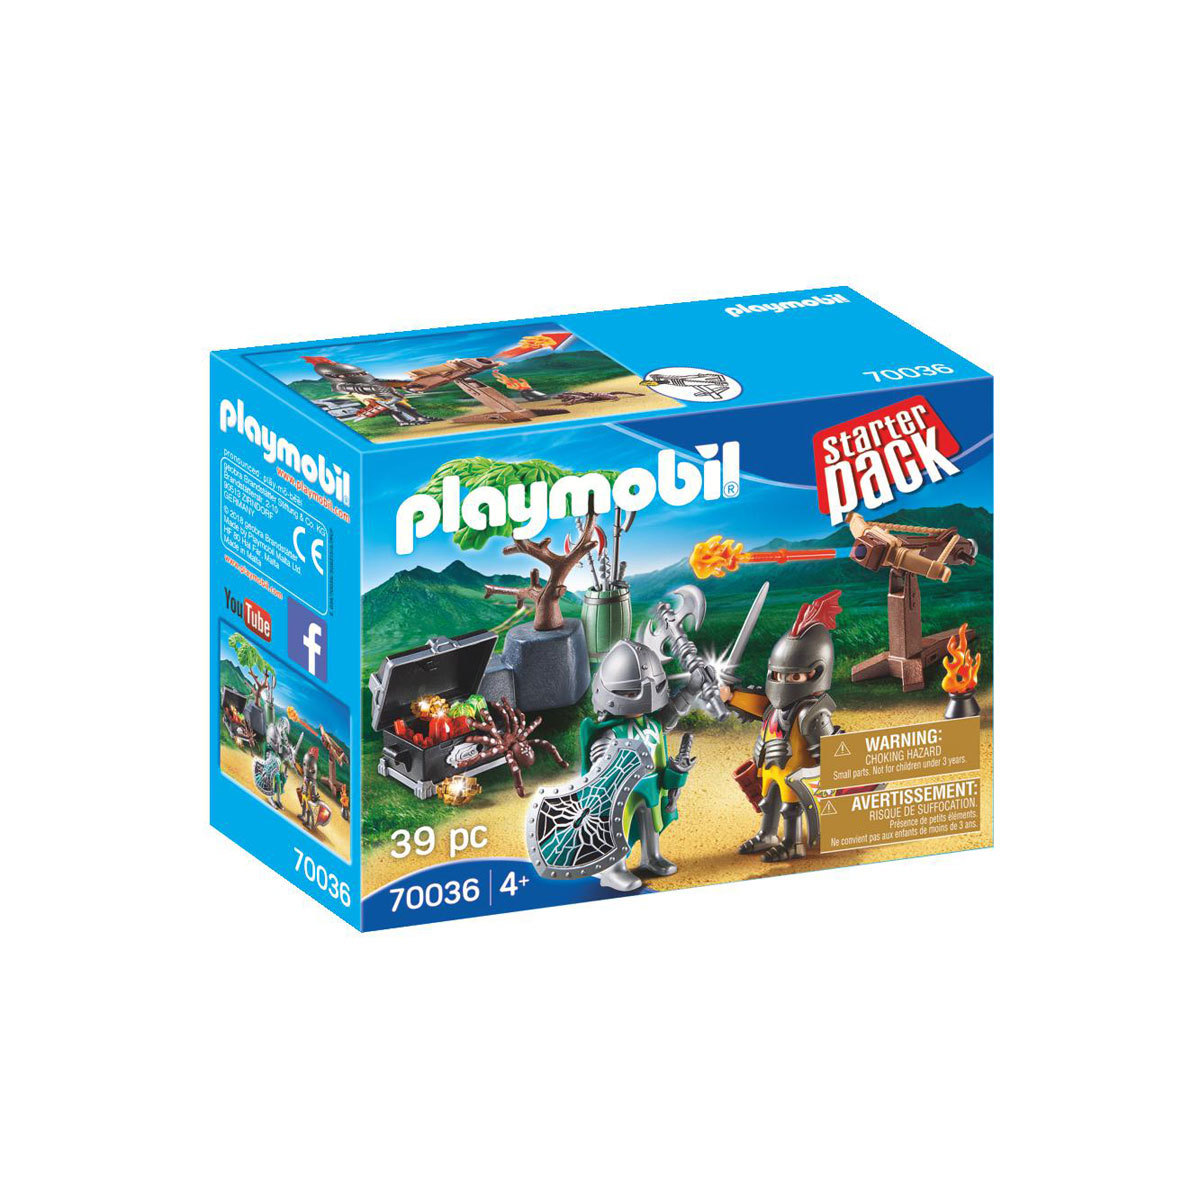 Playmobil 70036 Knights Starter Pack with Treasure from Early Learning Center